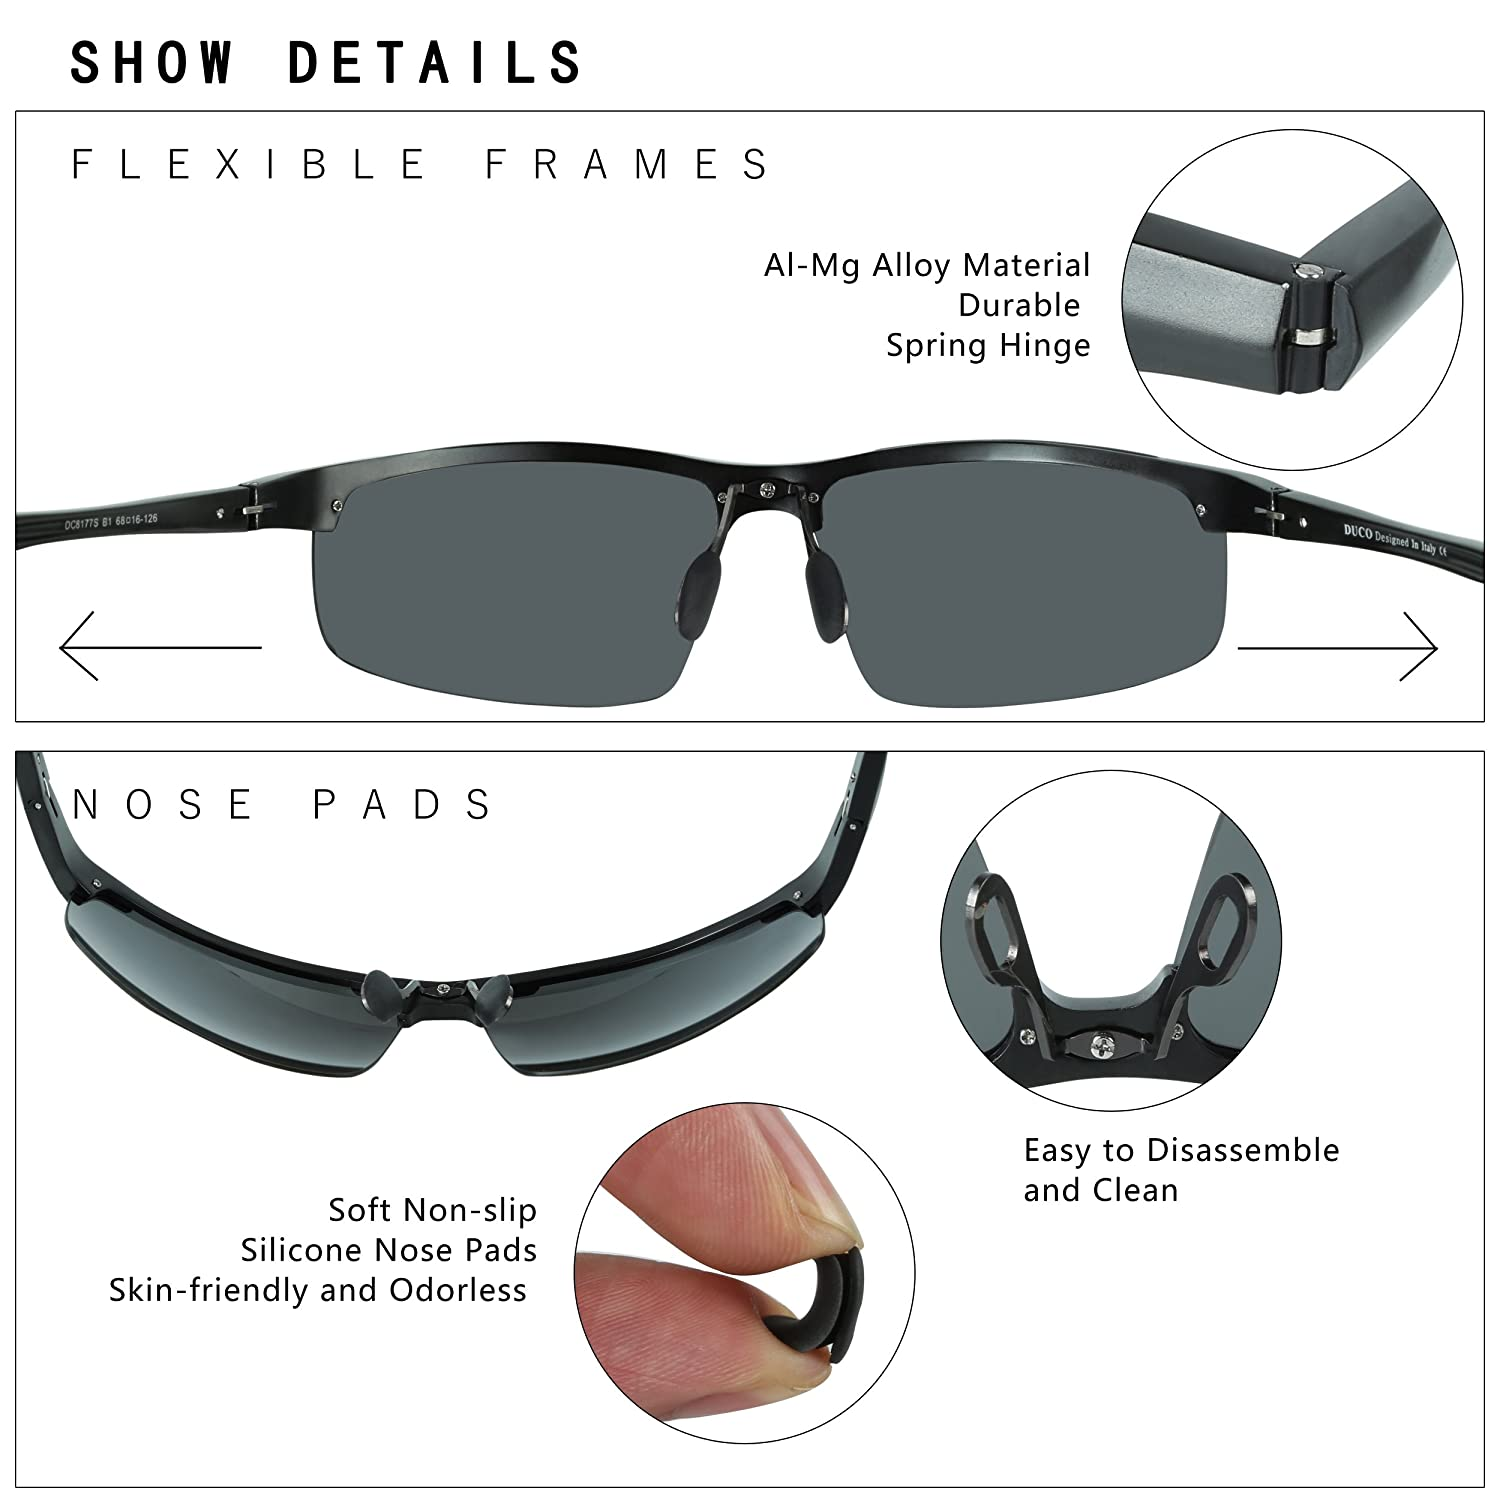 a46fcec8ca Amazon.com  DUCO Mens Sports Polarized Sunglasses UV Protection Sunglasses  for Men 8177s(Black Frame Gray Lens)  Sports   Outdoors